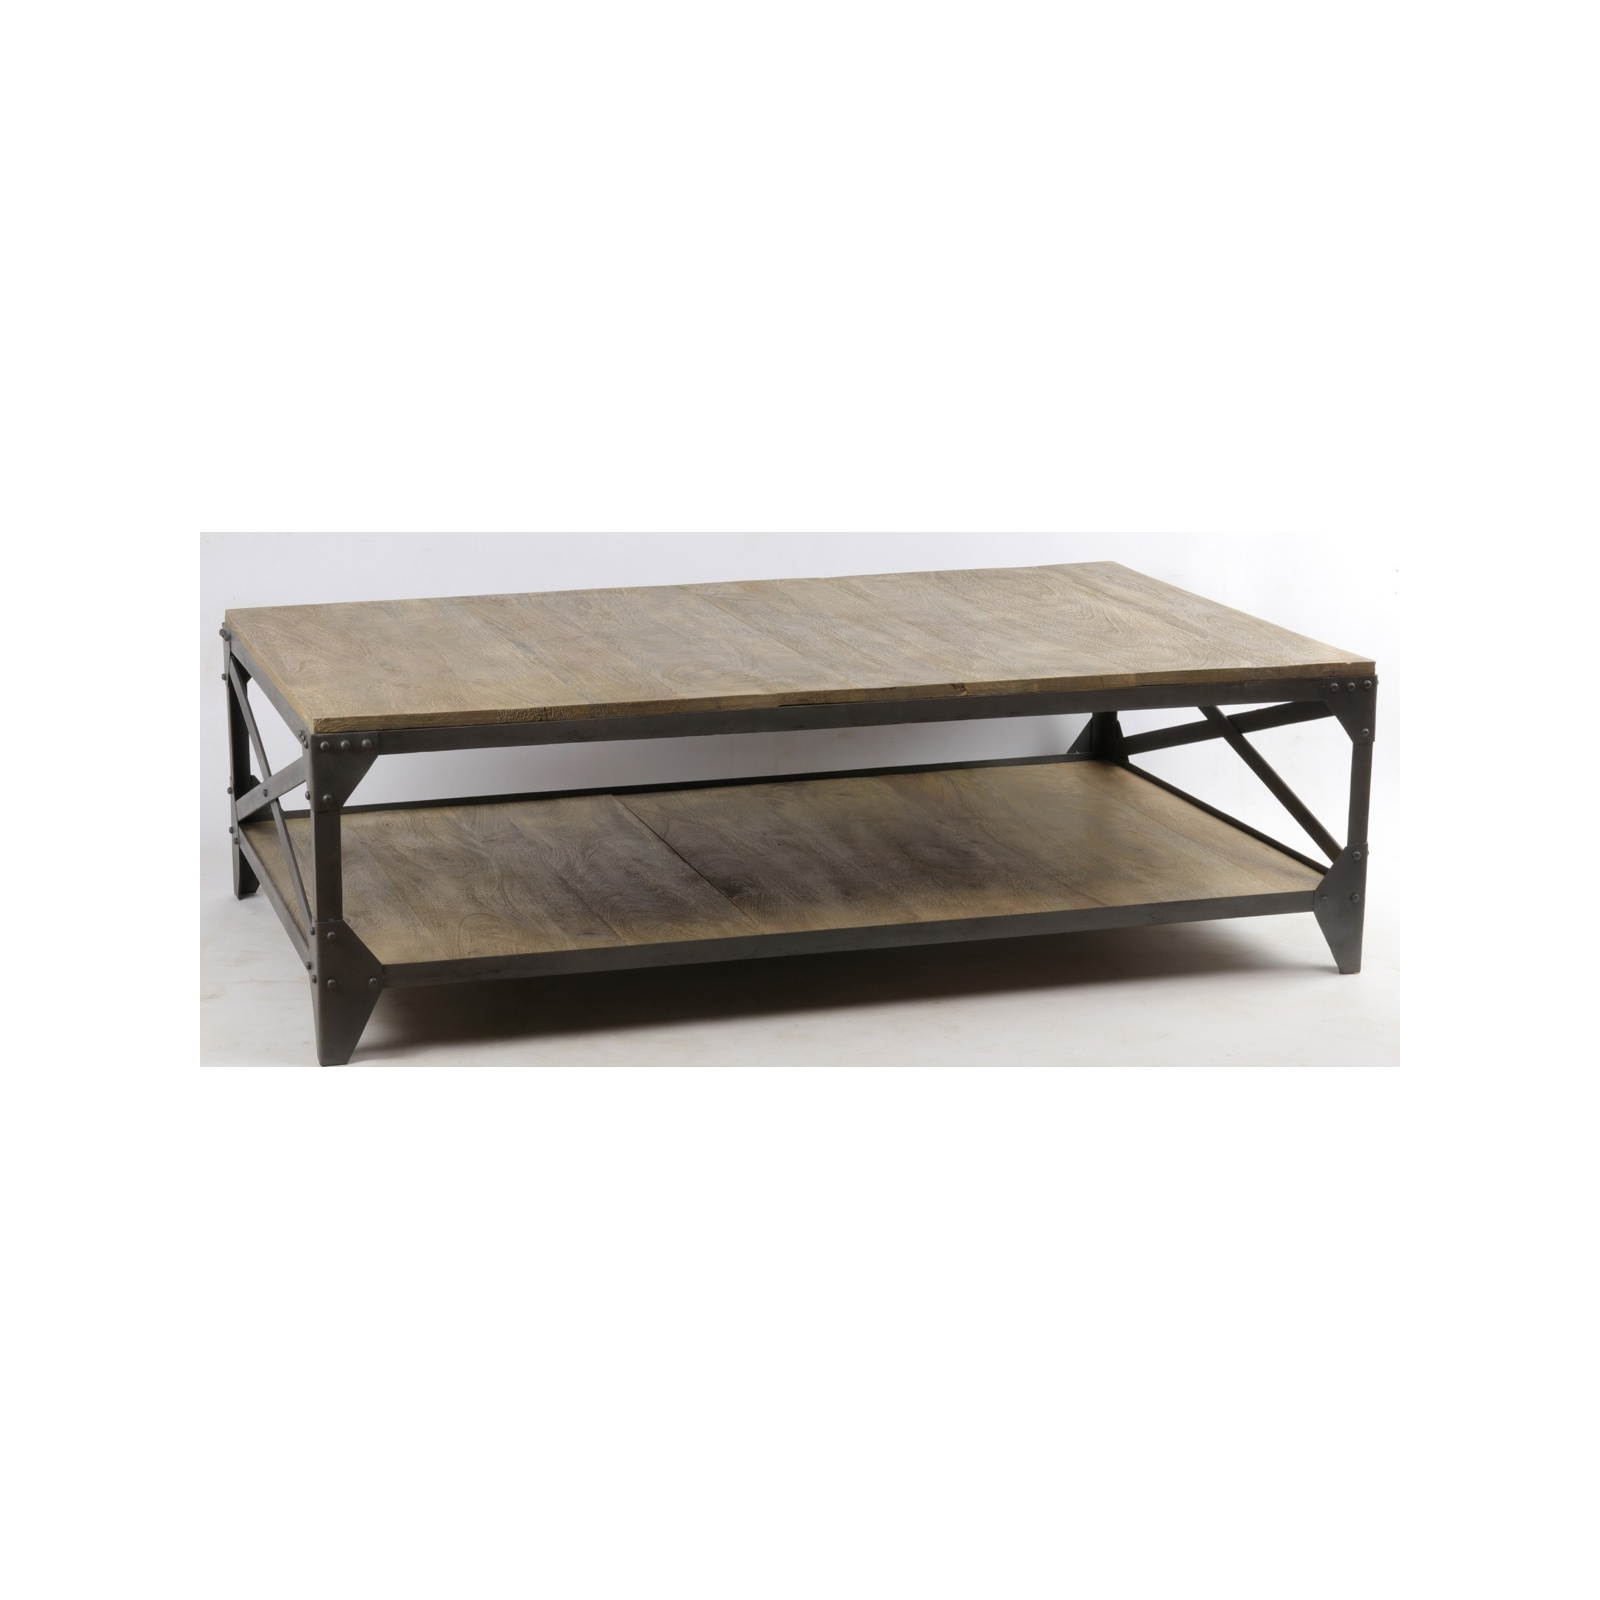 Table basse industrielle in29 for Table basse industrielle blanche